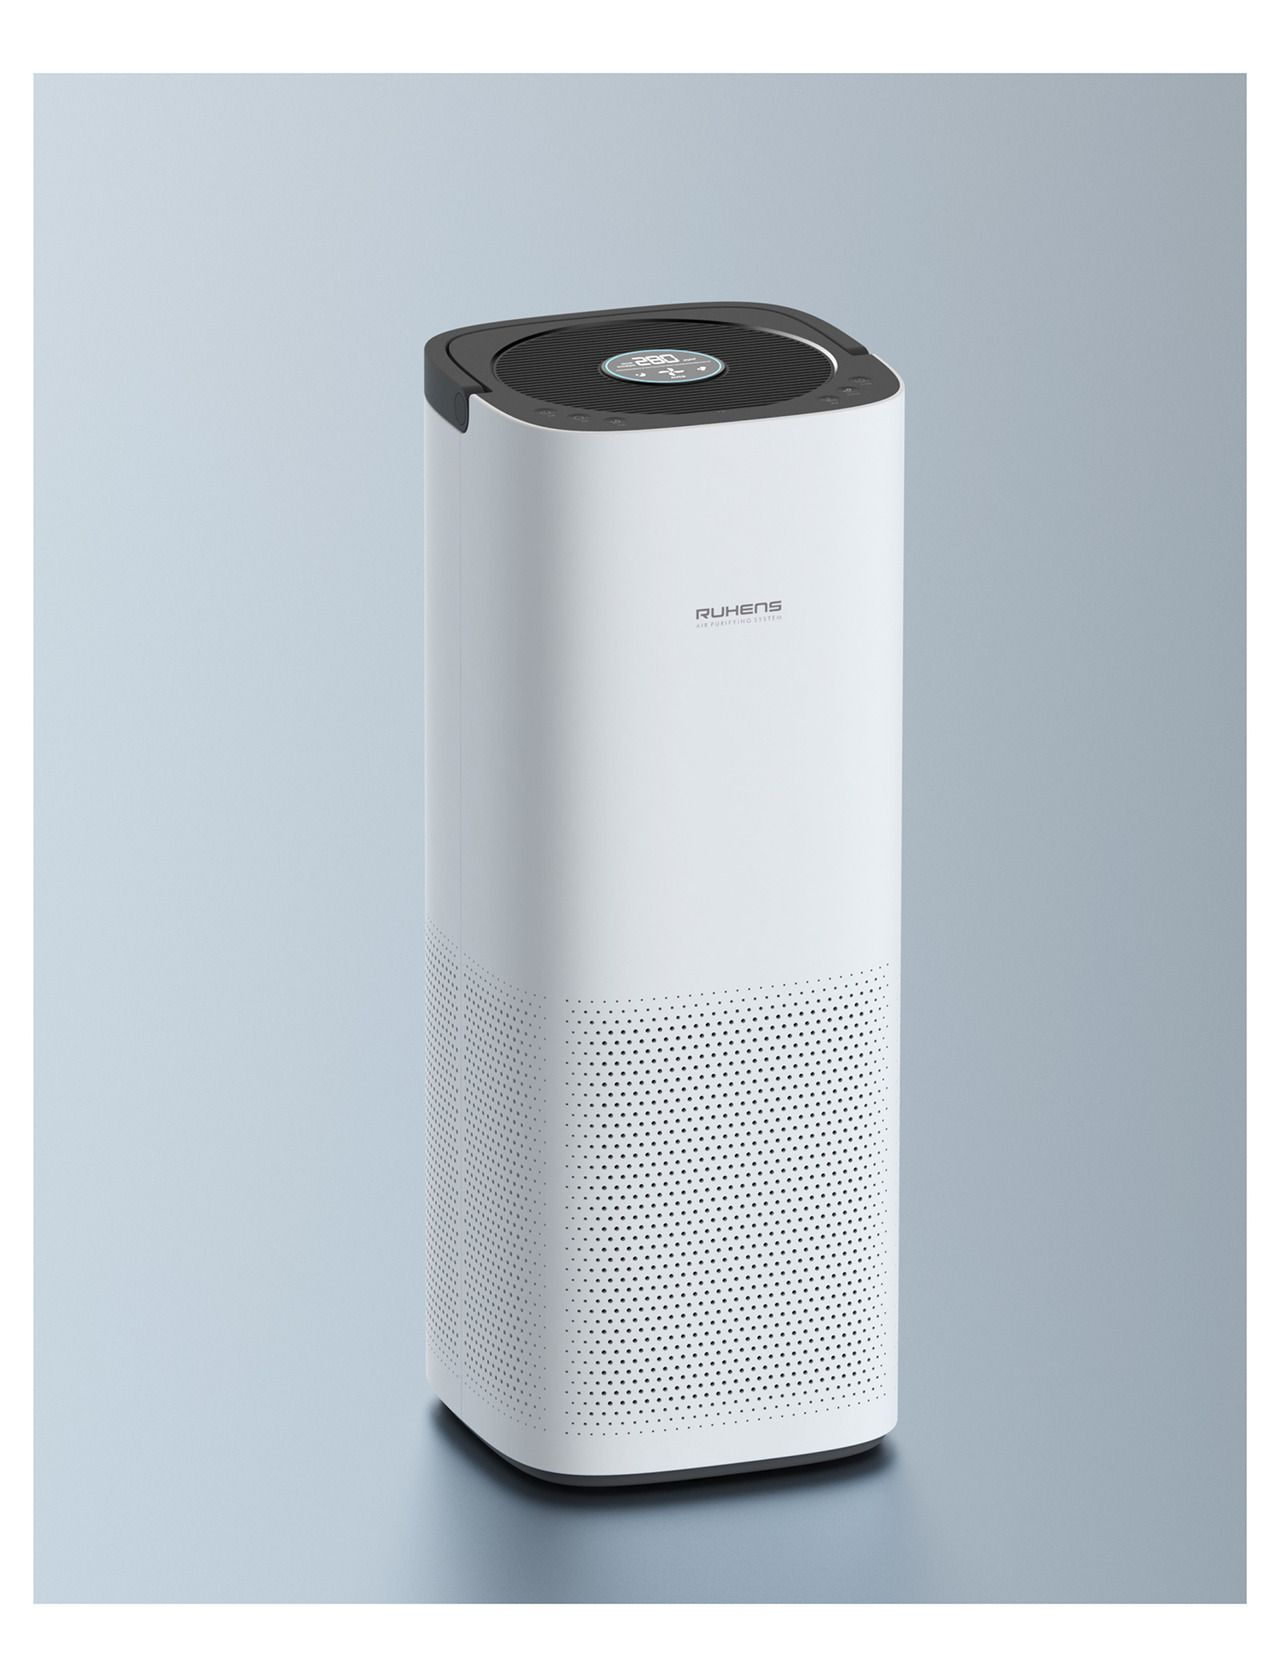 DESIGN AND WHATNOT in 2020 Air purifier, Design, Form design